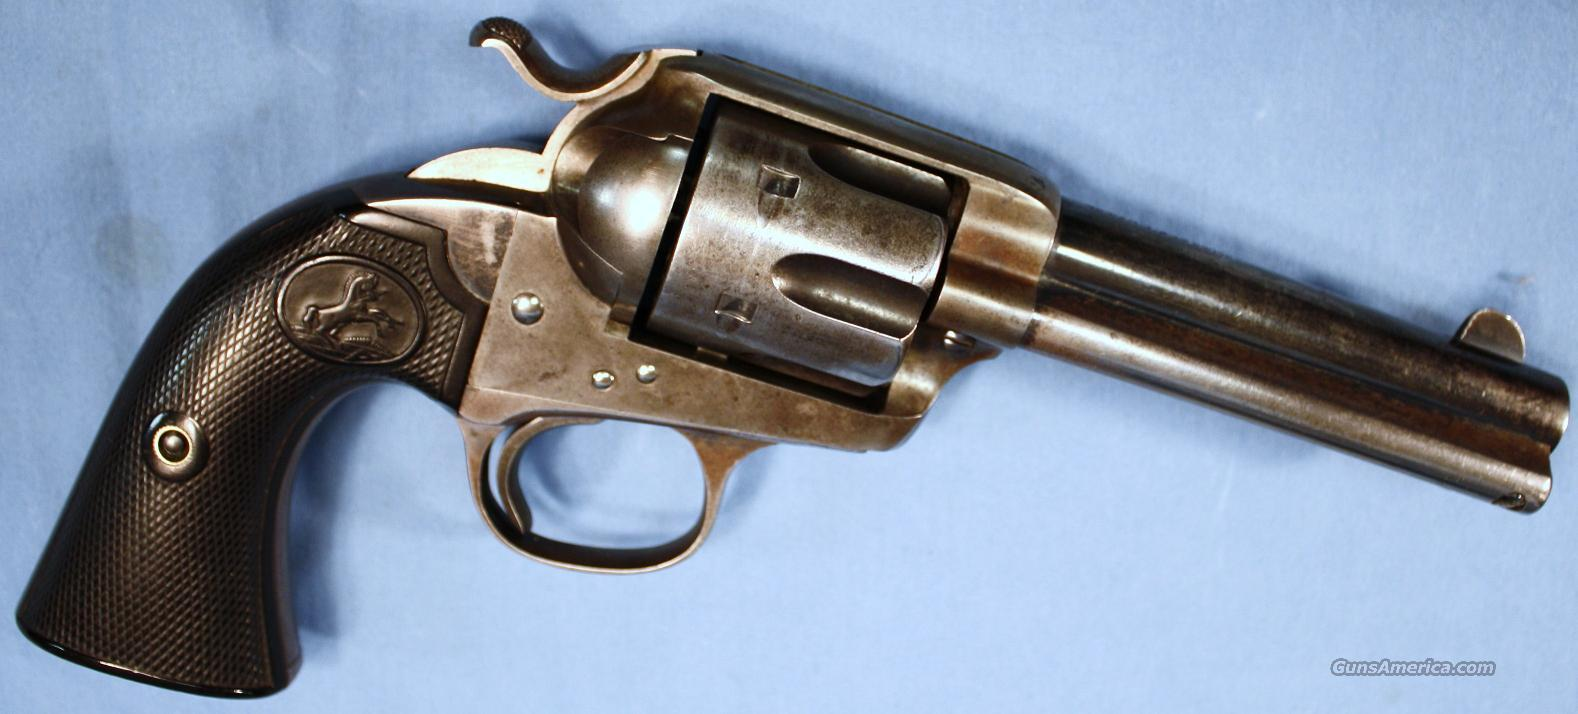 Colt Bisley Model Single Action Army Revolver 38-40  Guns > Pistols > Colt Single Action Revolvers - 1st Gen.